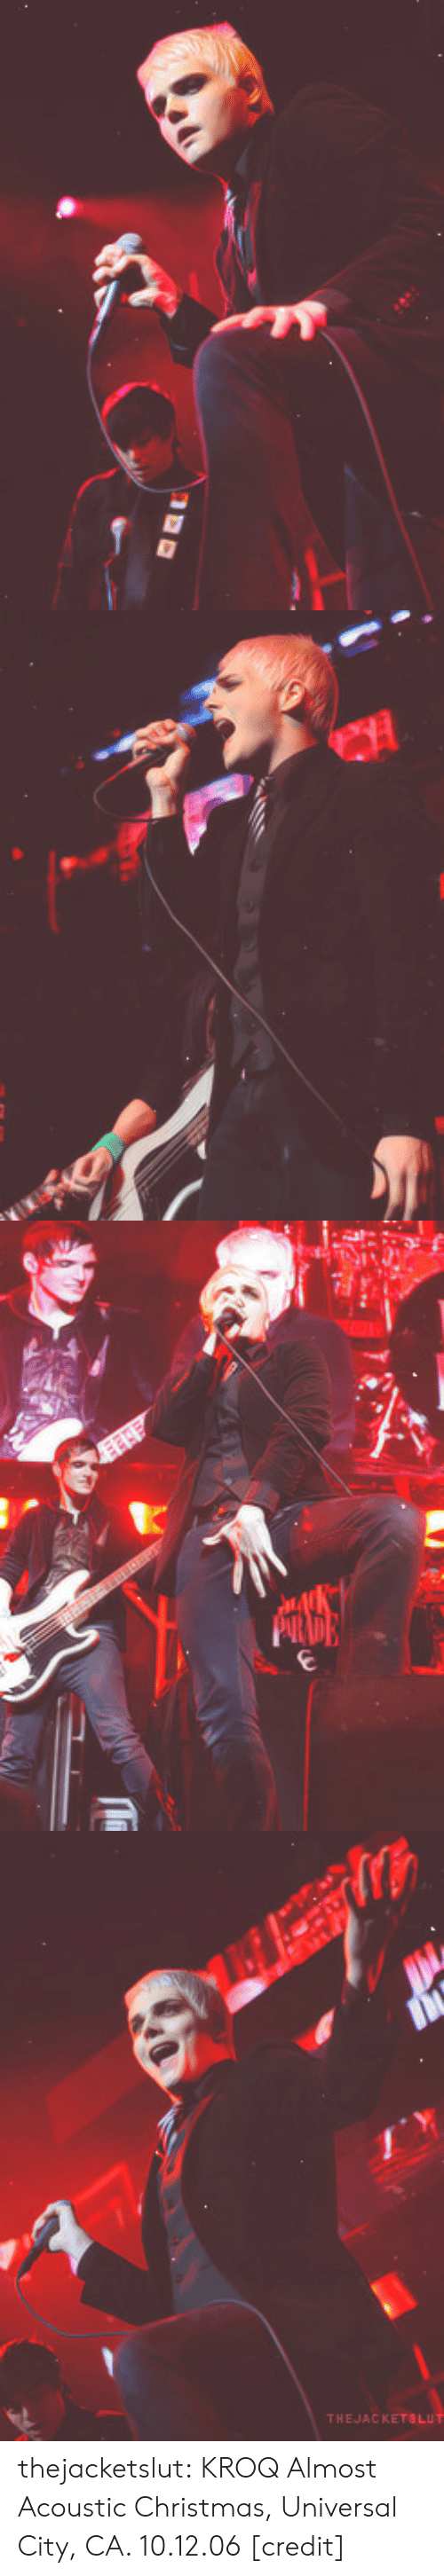 Christmas, Tumblr, and Blog: thejacketslut:  KROQ Almost Acoustic Christmas, Universal City, CA. 10.12.06 [credit]